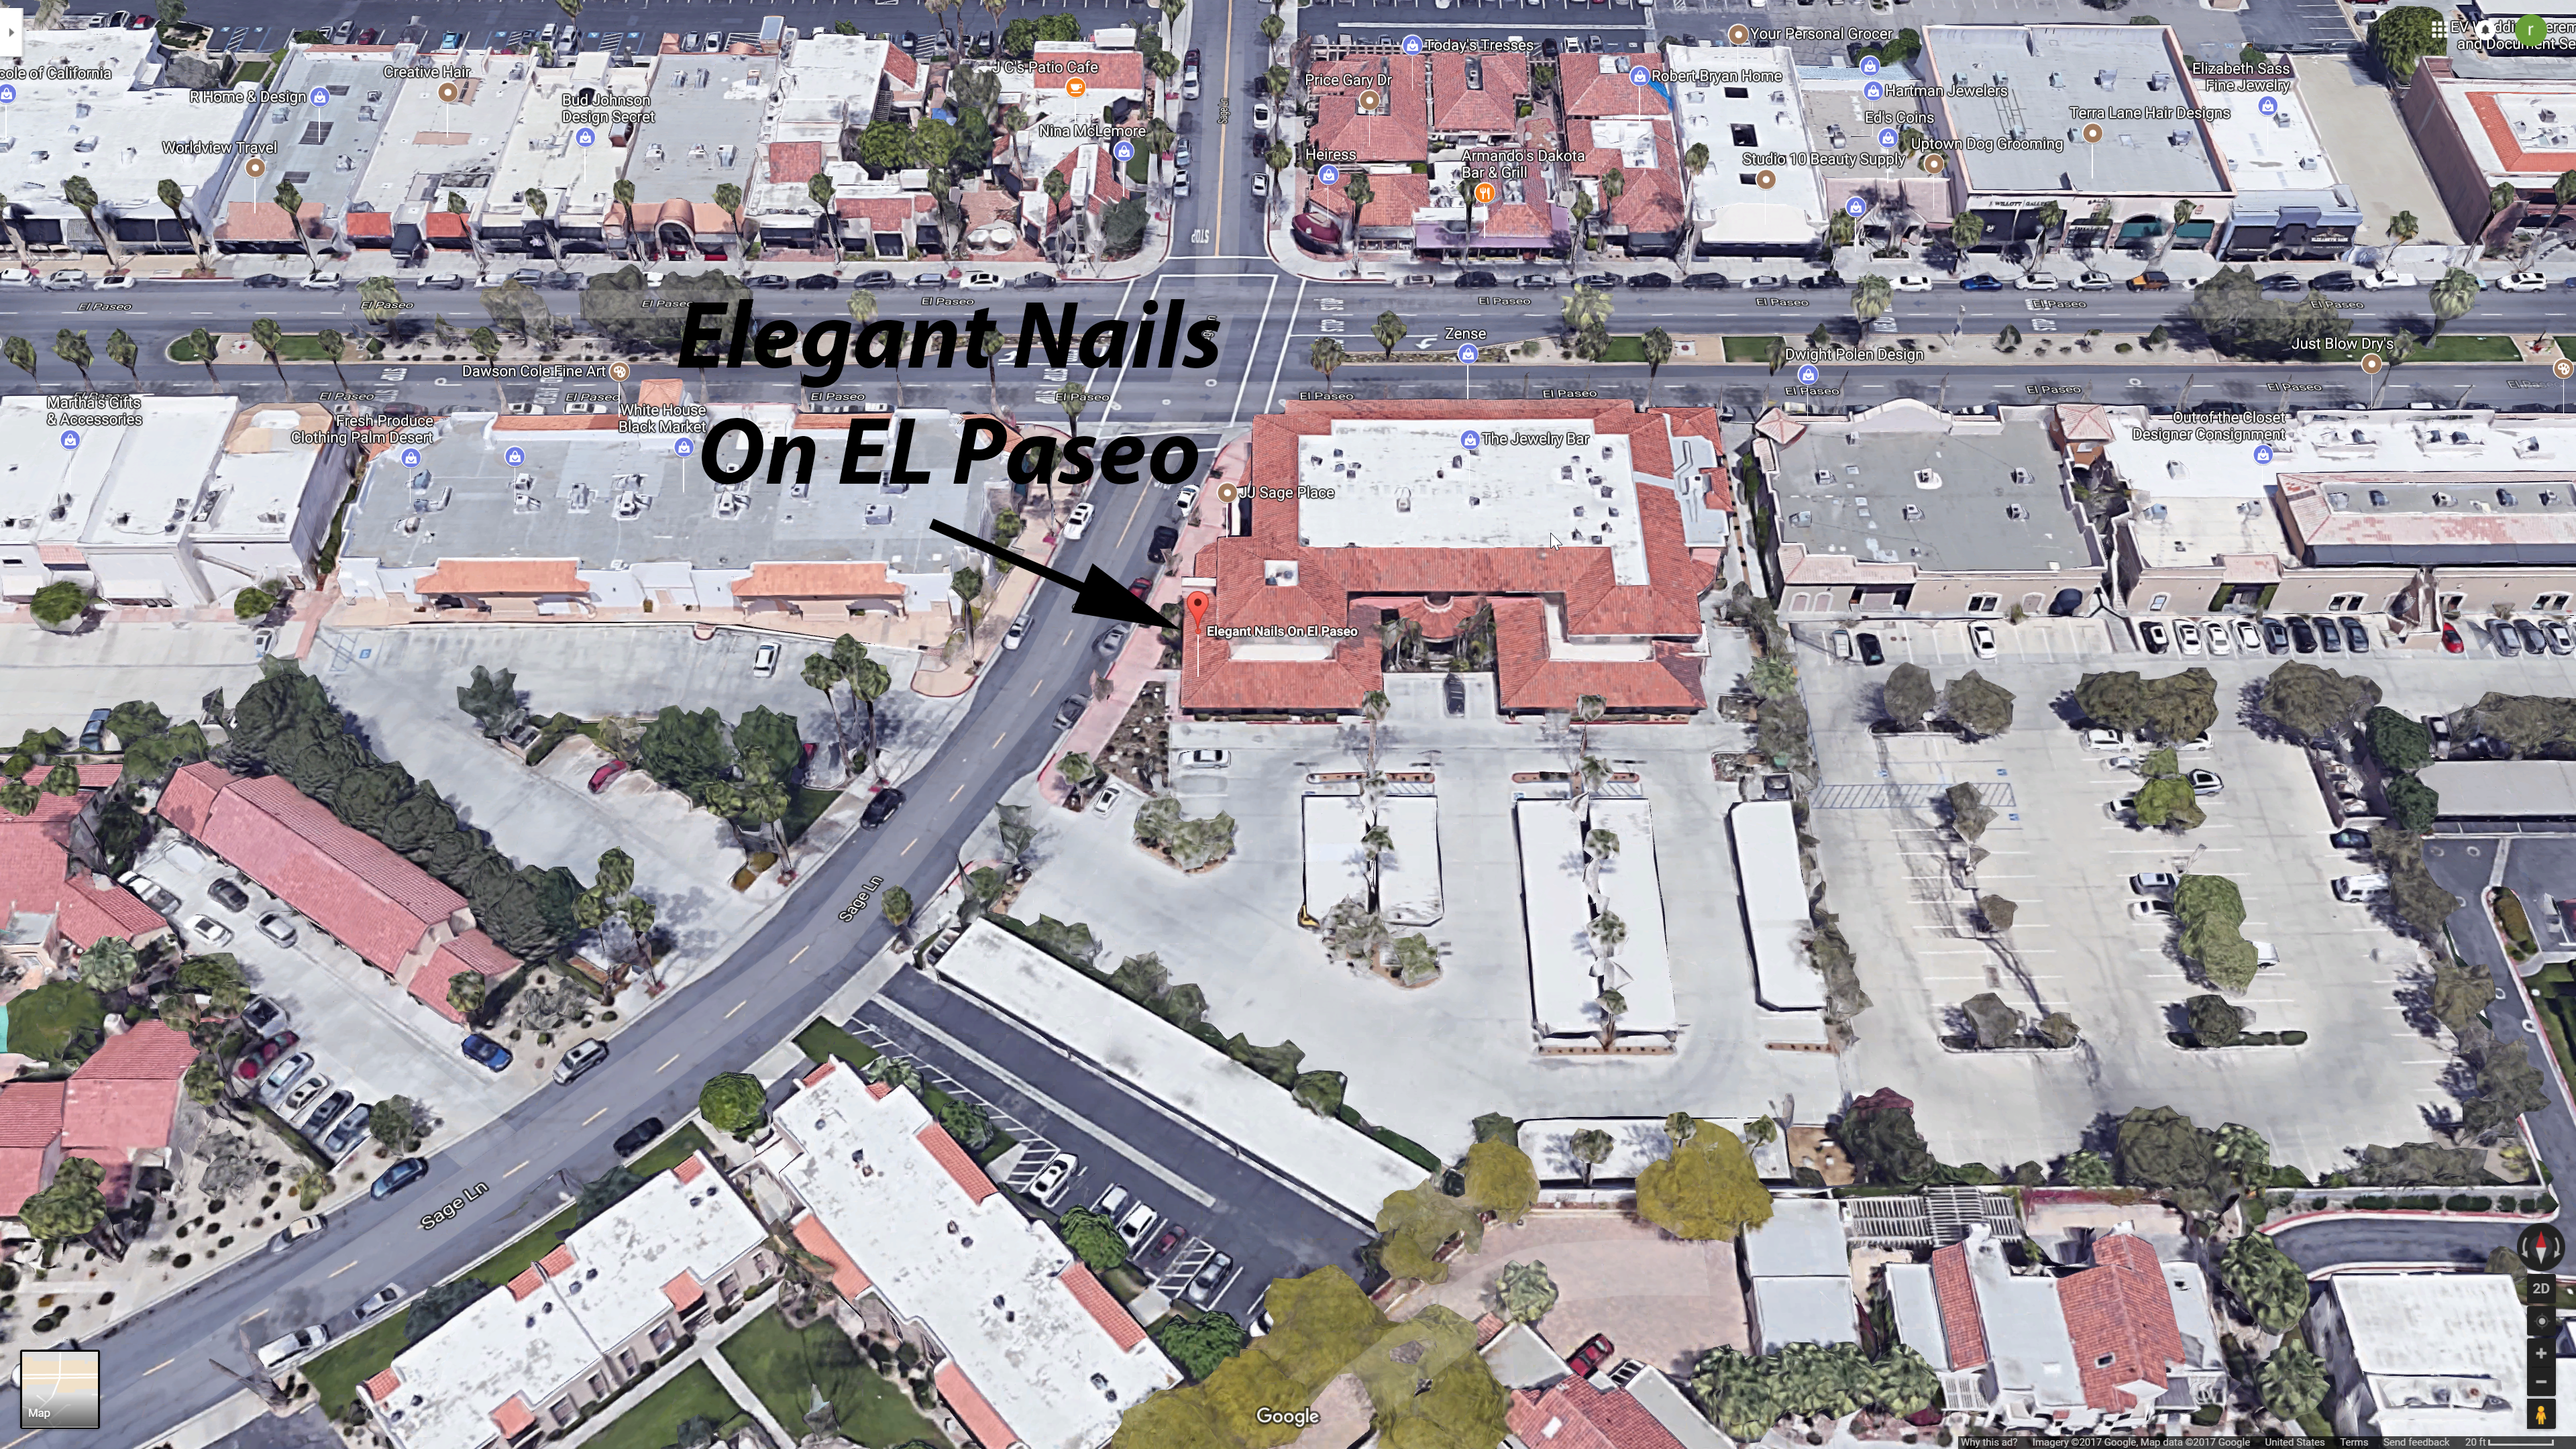 2017-10-25 15_57_46-Elegant Nails On El Paseo - Google Maps.png